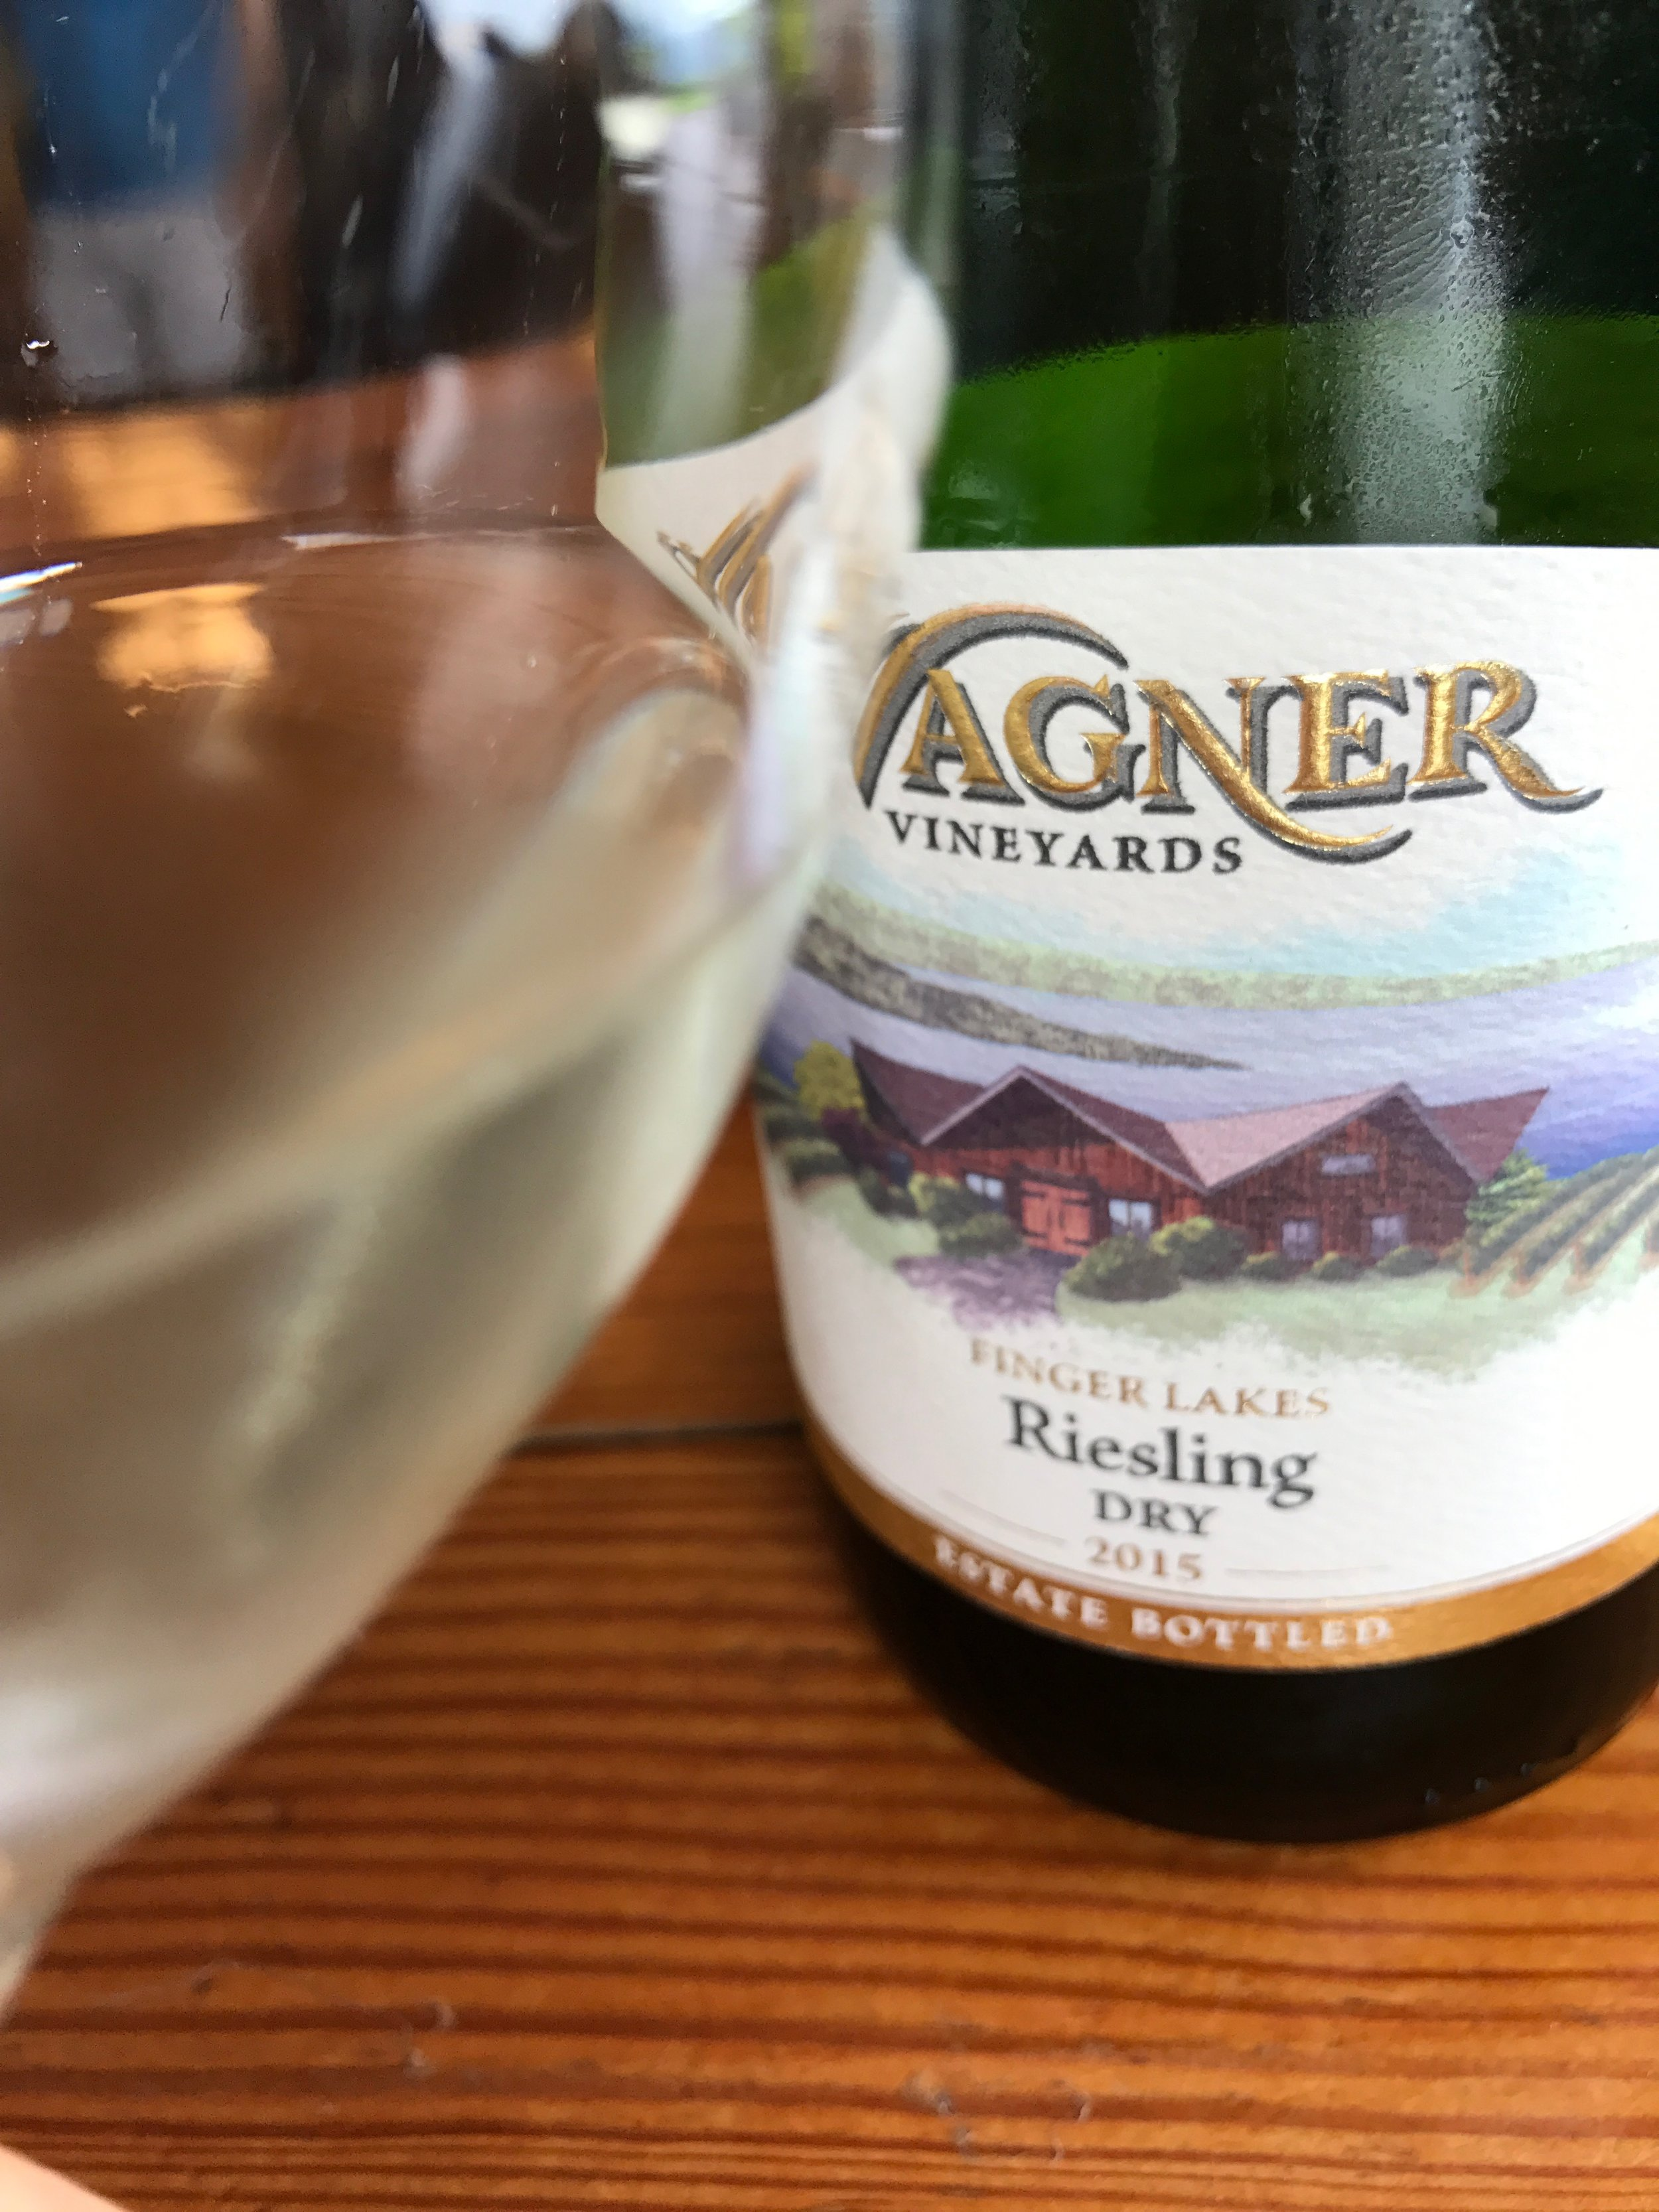 This  Wagner  2015 Dry Riesling comes from the Finger Lakes where some of my favorite rieslings are made. Bright and elegant, it will complement whatever is on your Thanksgiving table with its silky mouthfeel and fresh fruit (peaches!) flavor. Mouthwateringly delicious ($13)!